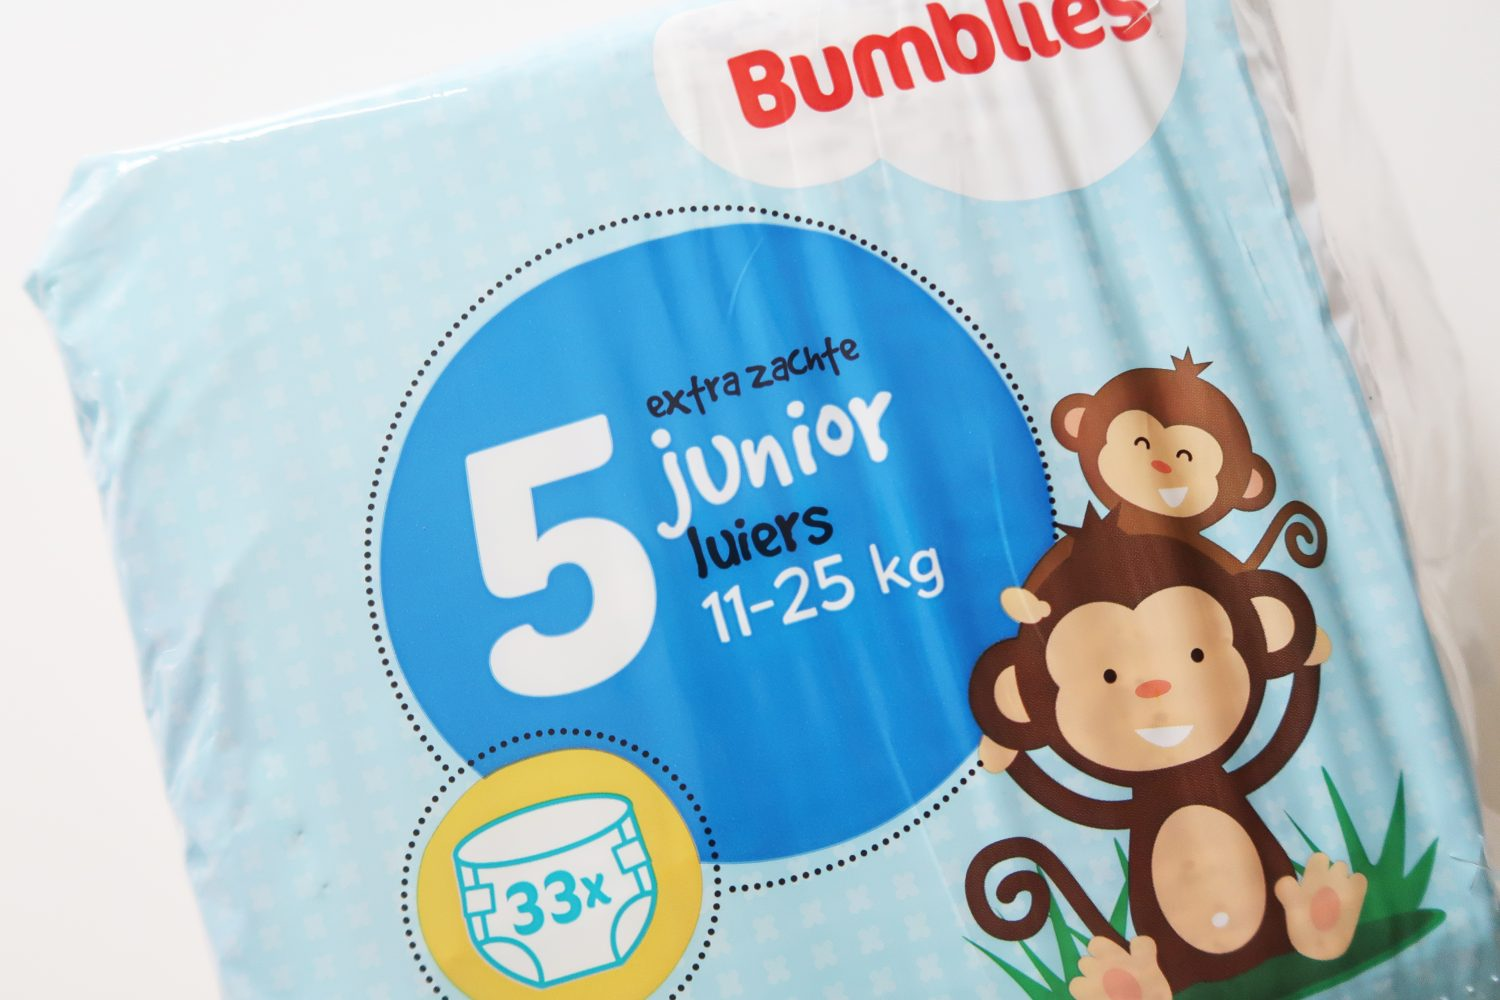 Review: Bumblies luiers